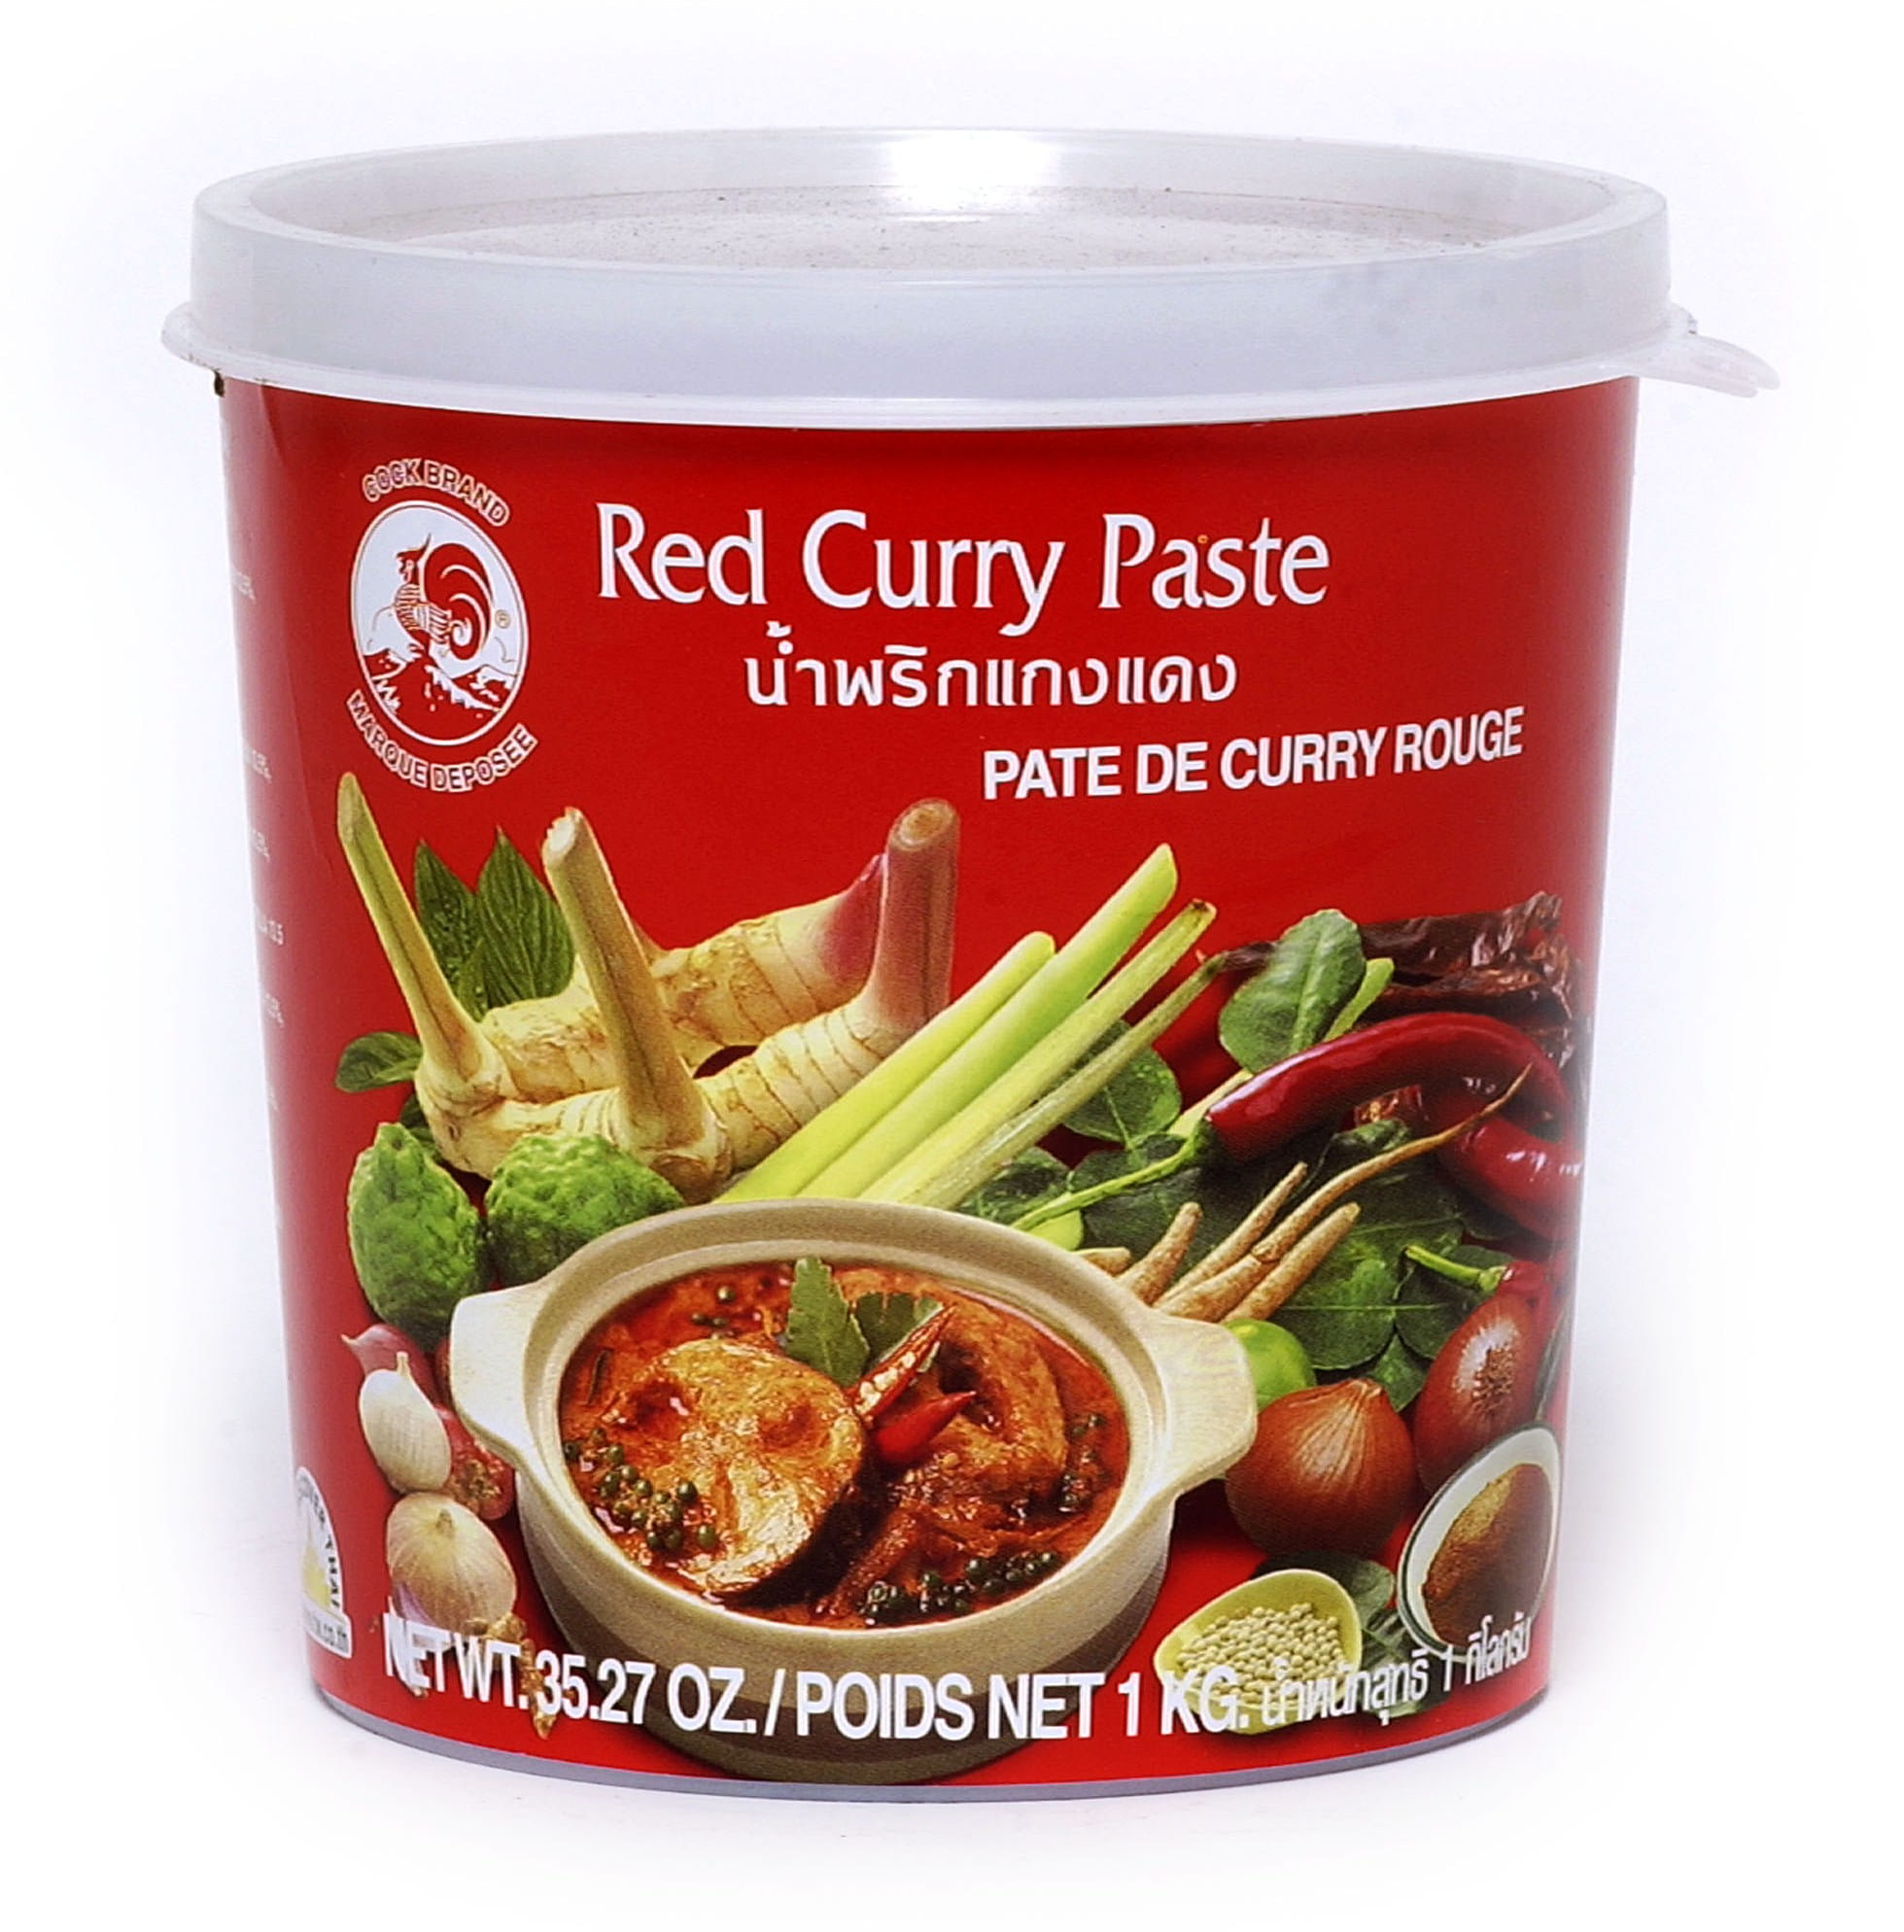 RED CURRY PASTE - Czerwona pasta curry 400gms AMG Retail Sp. z o.o